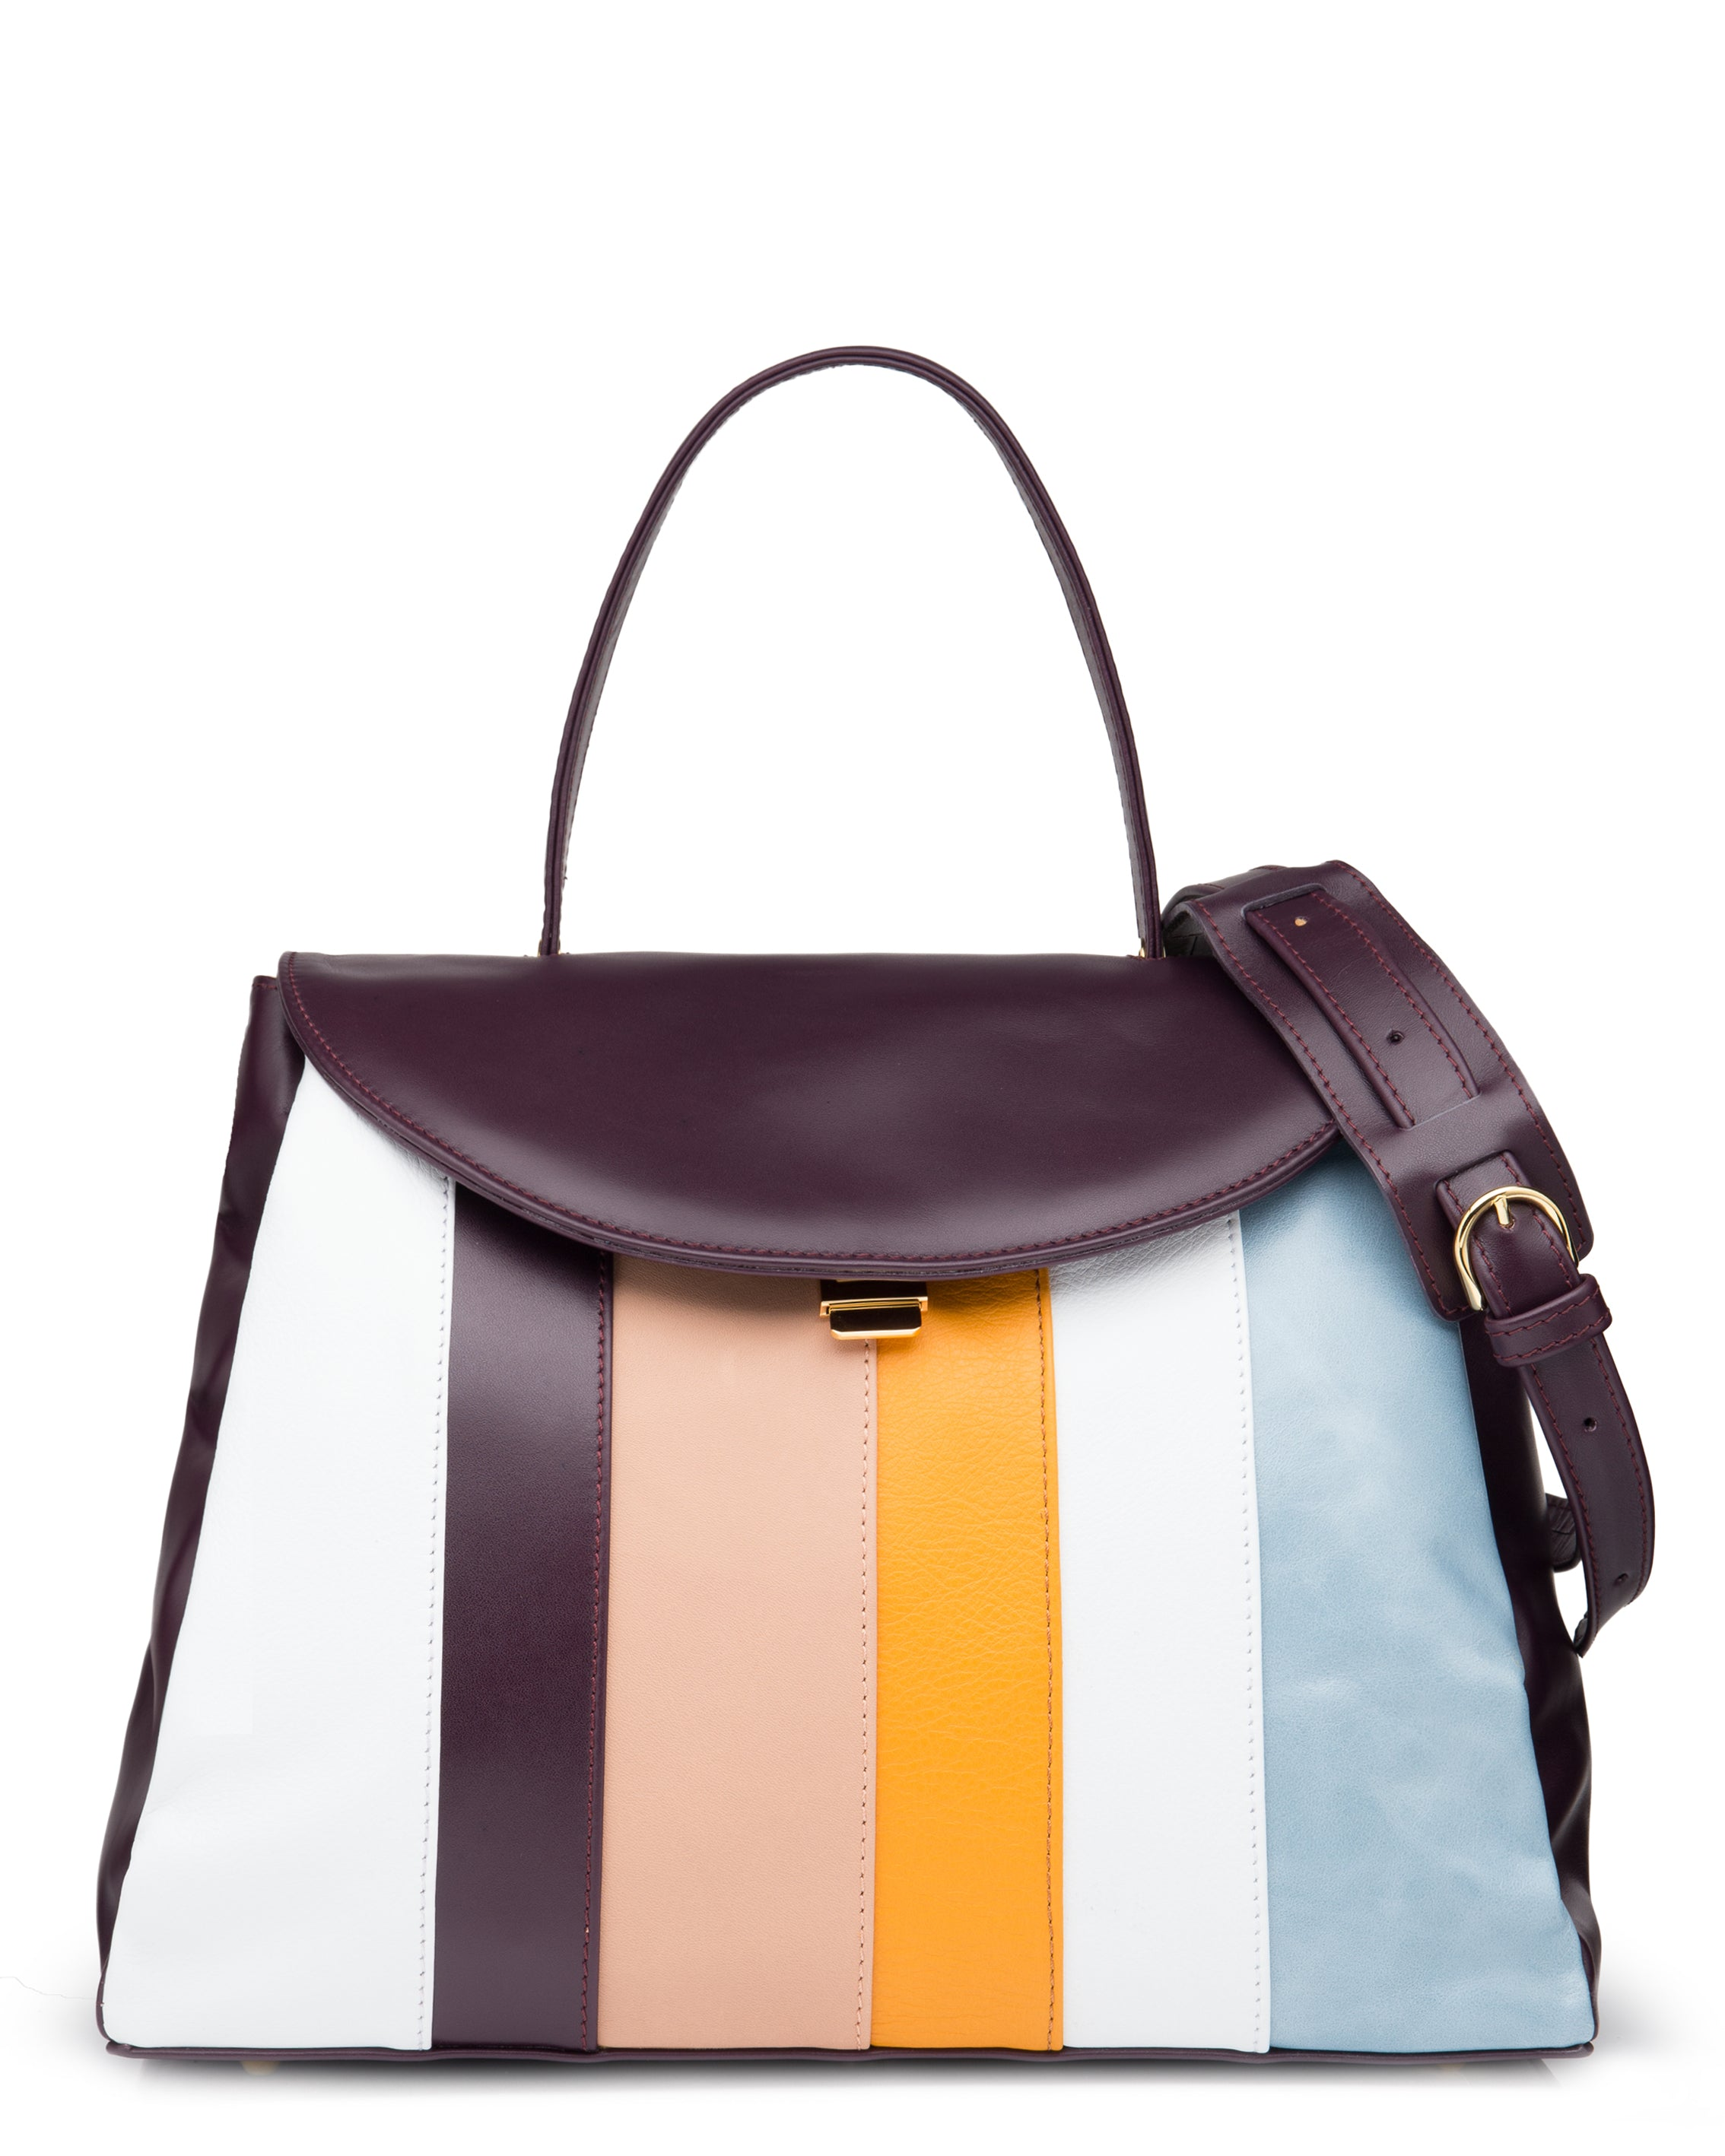 MANJERICA BEGONIA STRIPES Tote Bag in Leather